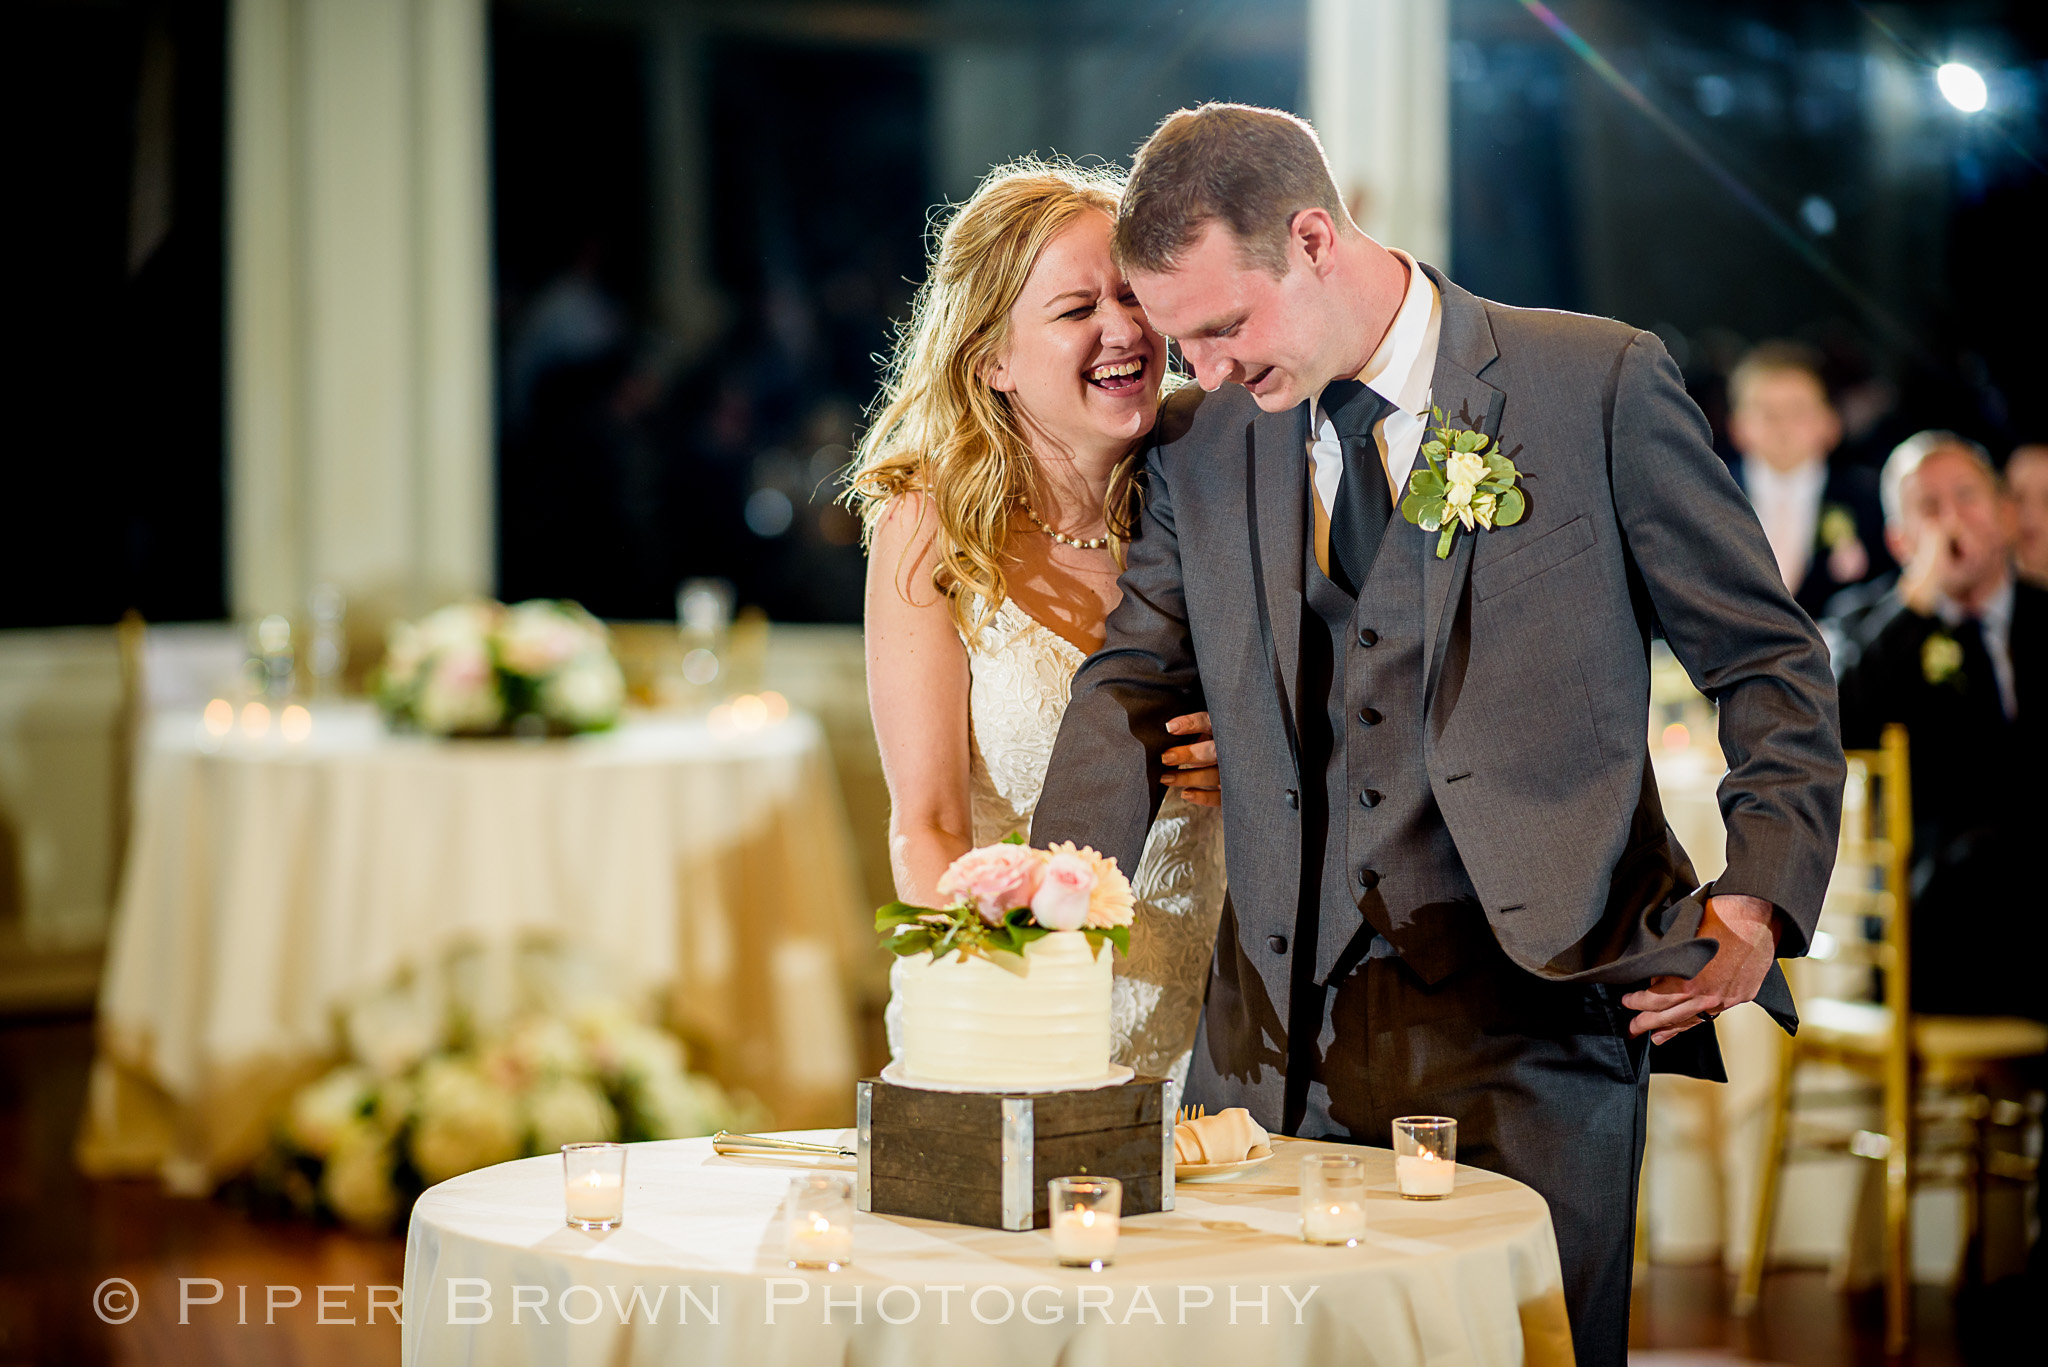 Bride laughing and Groom smiling cutting wedding cake